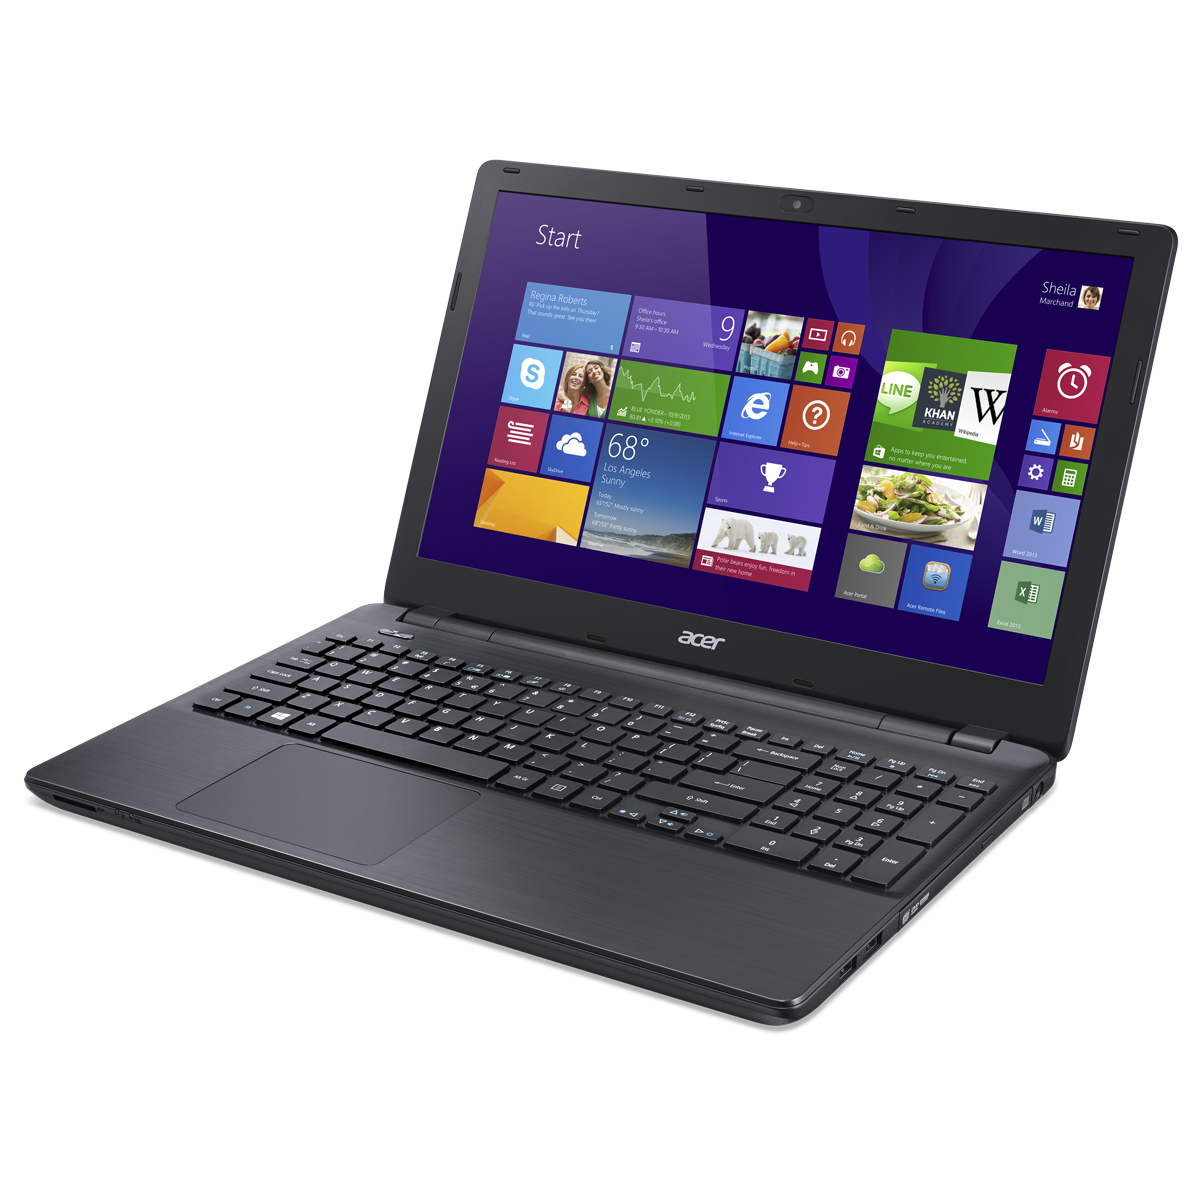 Acer Aspire V5-571G Realtek Sound Windows 8 X64